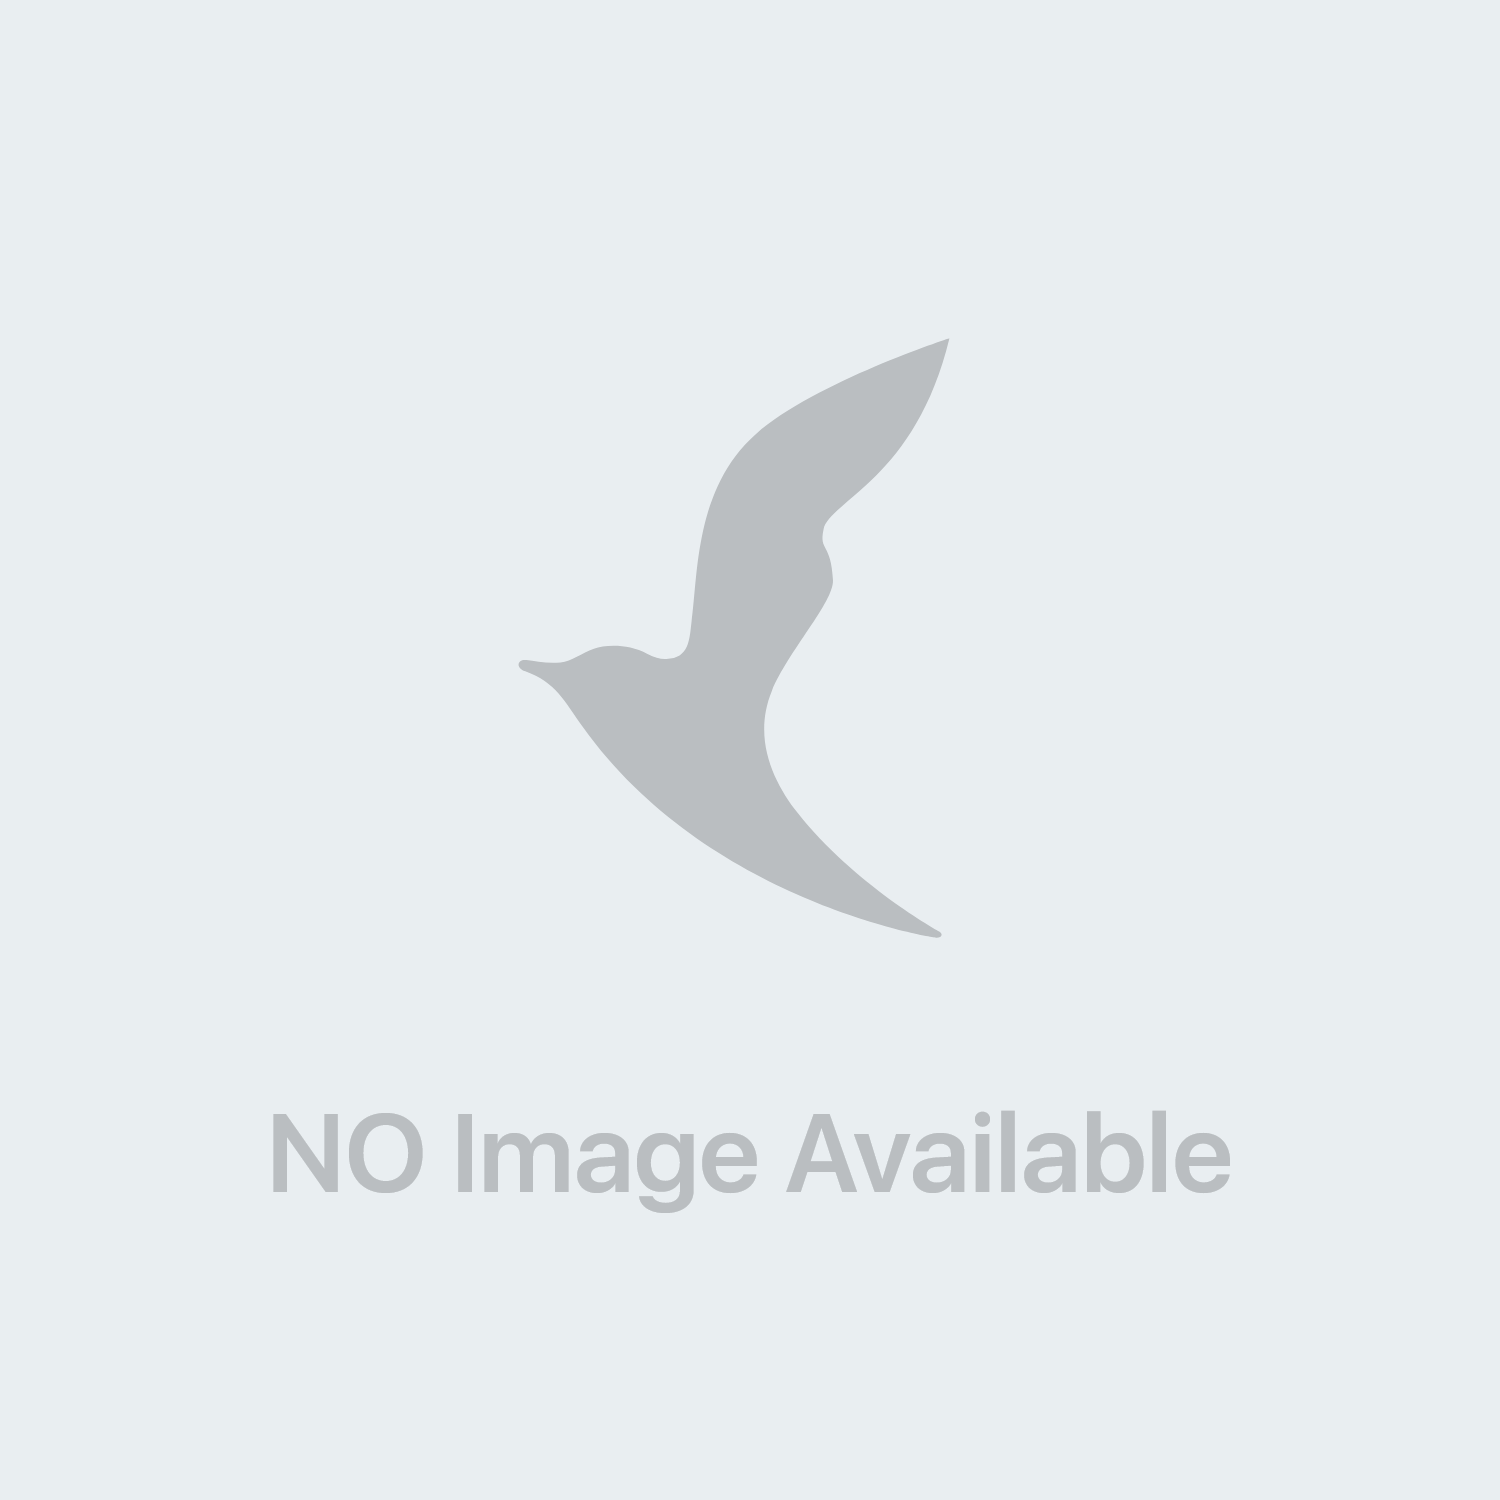 Body Spring Cartilagine di Squalo Integratore Articolare 50 Capsule